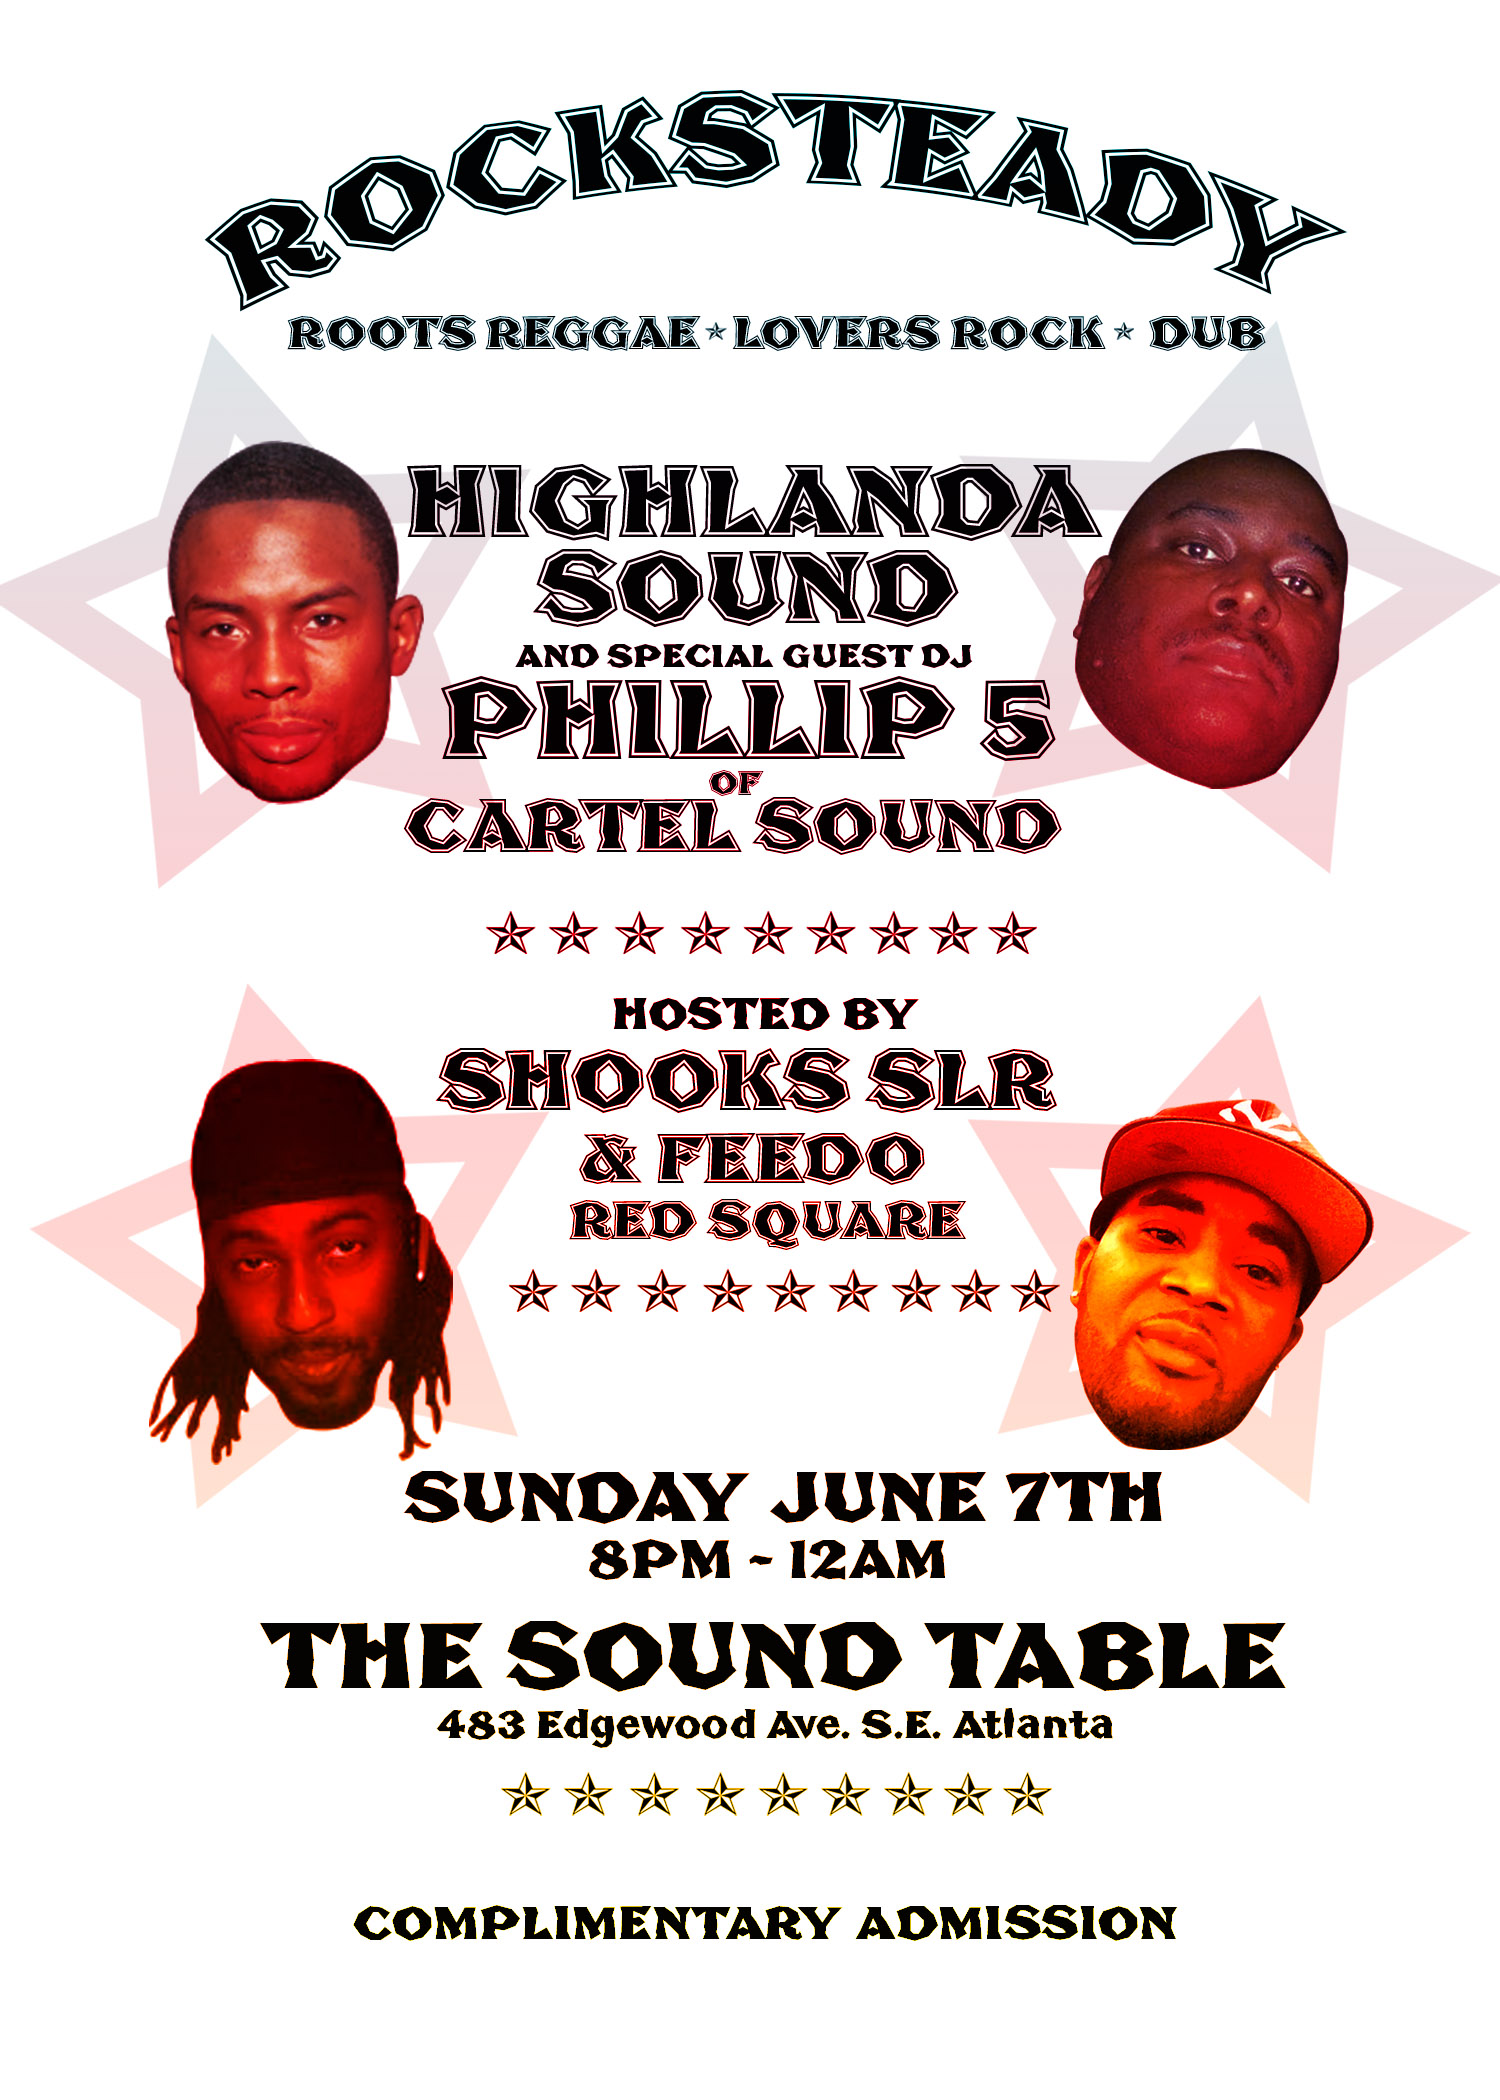 Rocksteady  Roots reggae / Lovers rock / Dub  Hosted by Shooks and Feedo Red Square  with Highlanda Sound  and  Special guest DJ Phillip 5 of Cartel Sound  Sunday June 7th 8pm-12am  The Sound Table  483 Edgewood Ave. S.E. Atlanta  Complimentary Admission